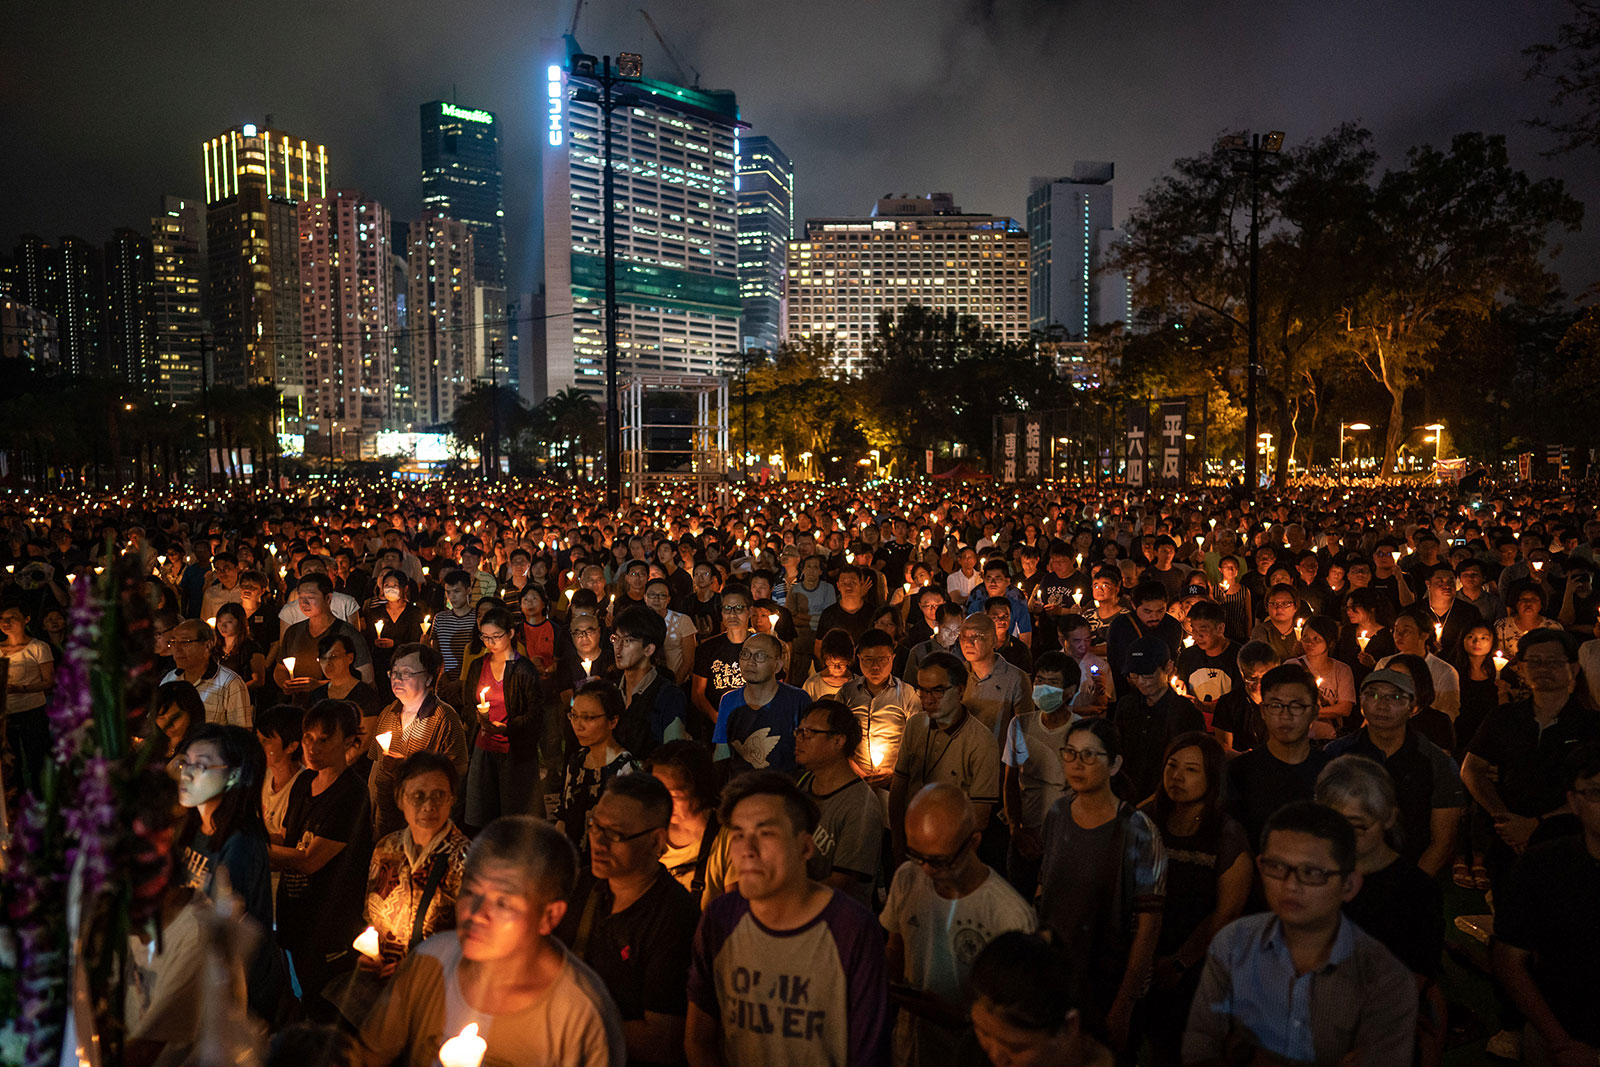 People gather during the annual Tiananmen Square vigil at Hong Kong's Victoria Park in 2019.